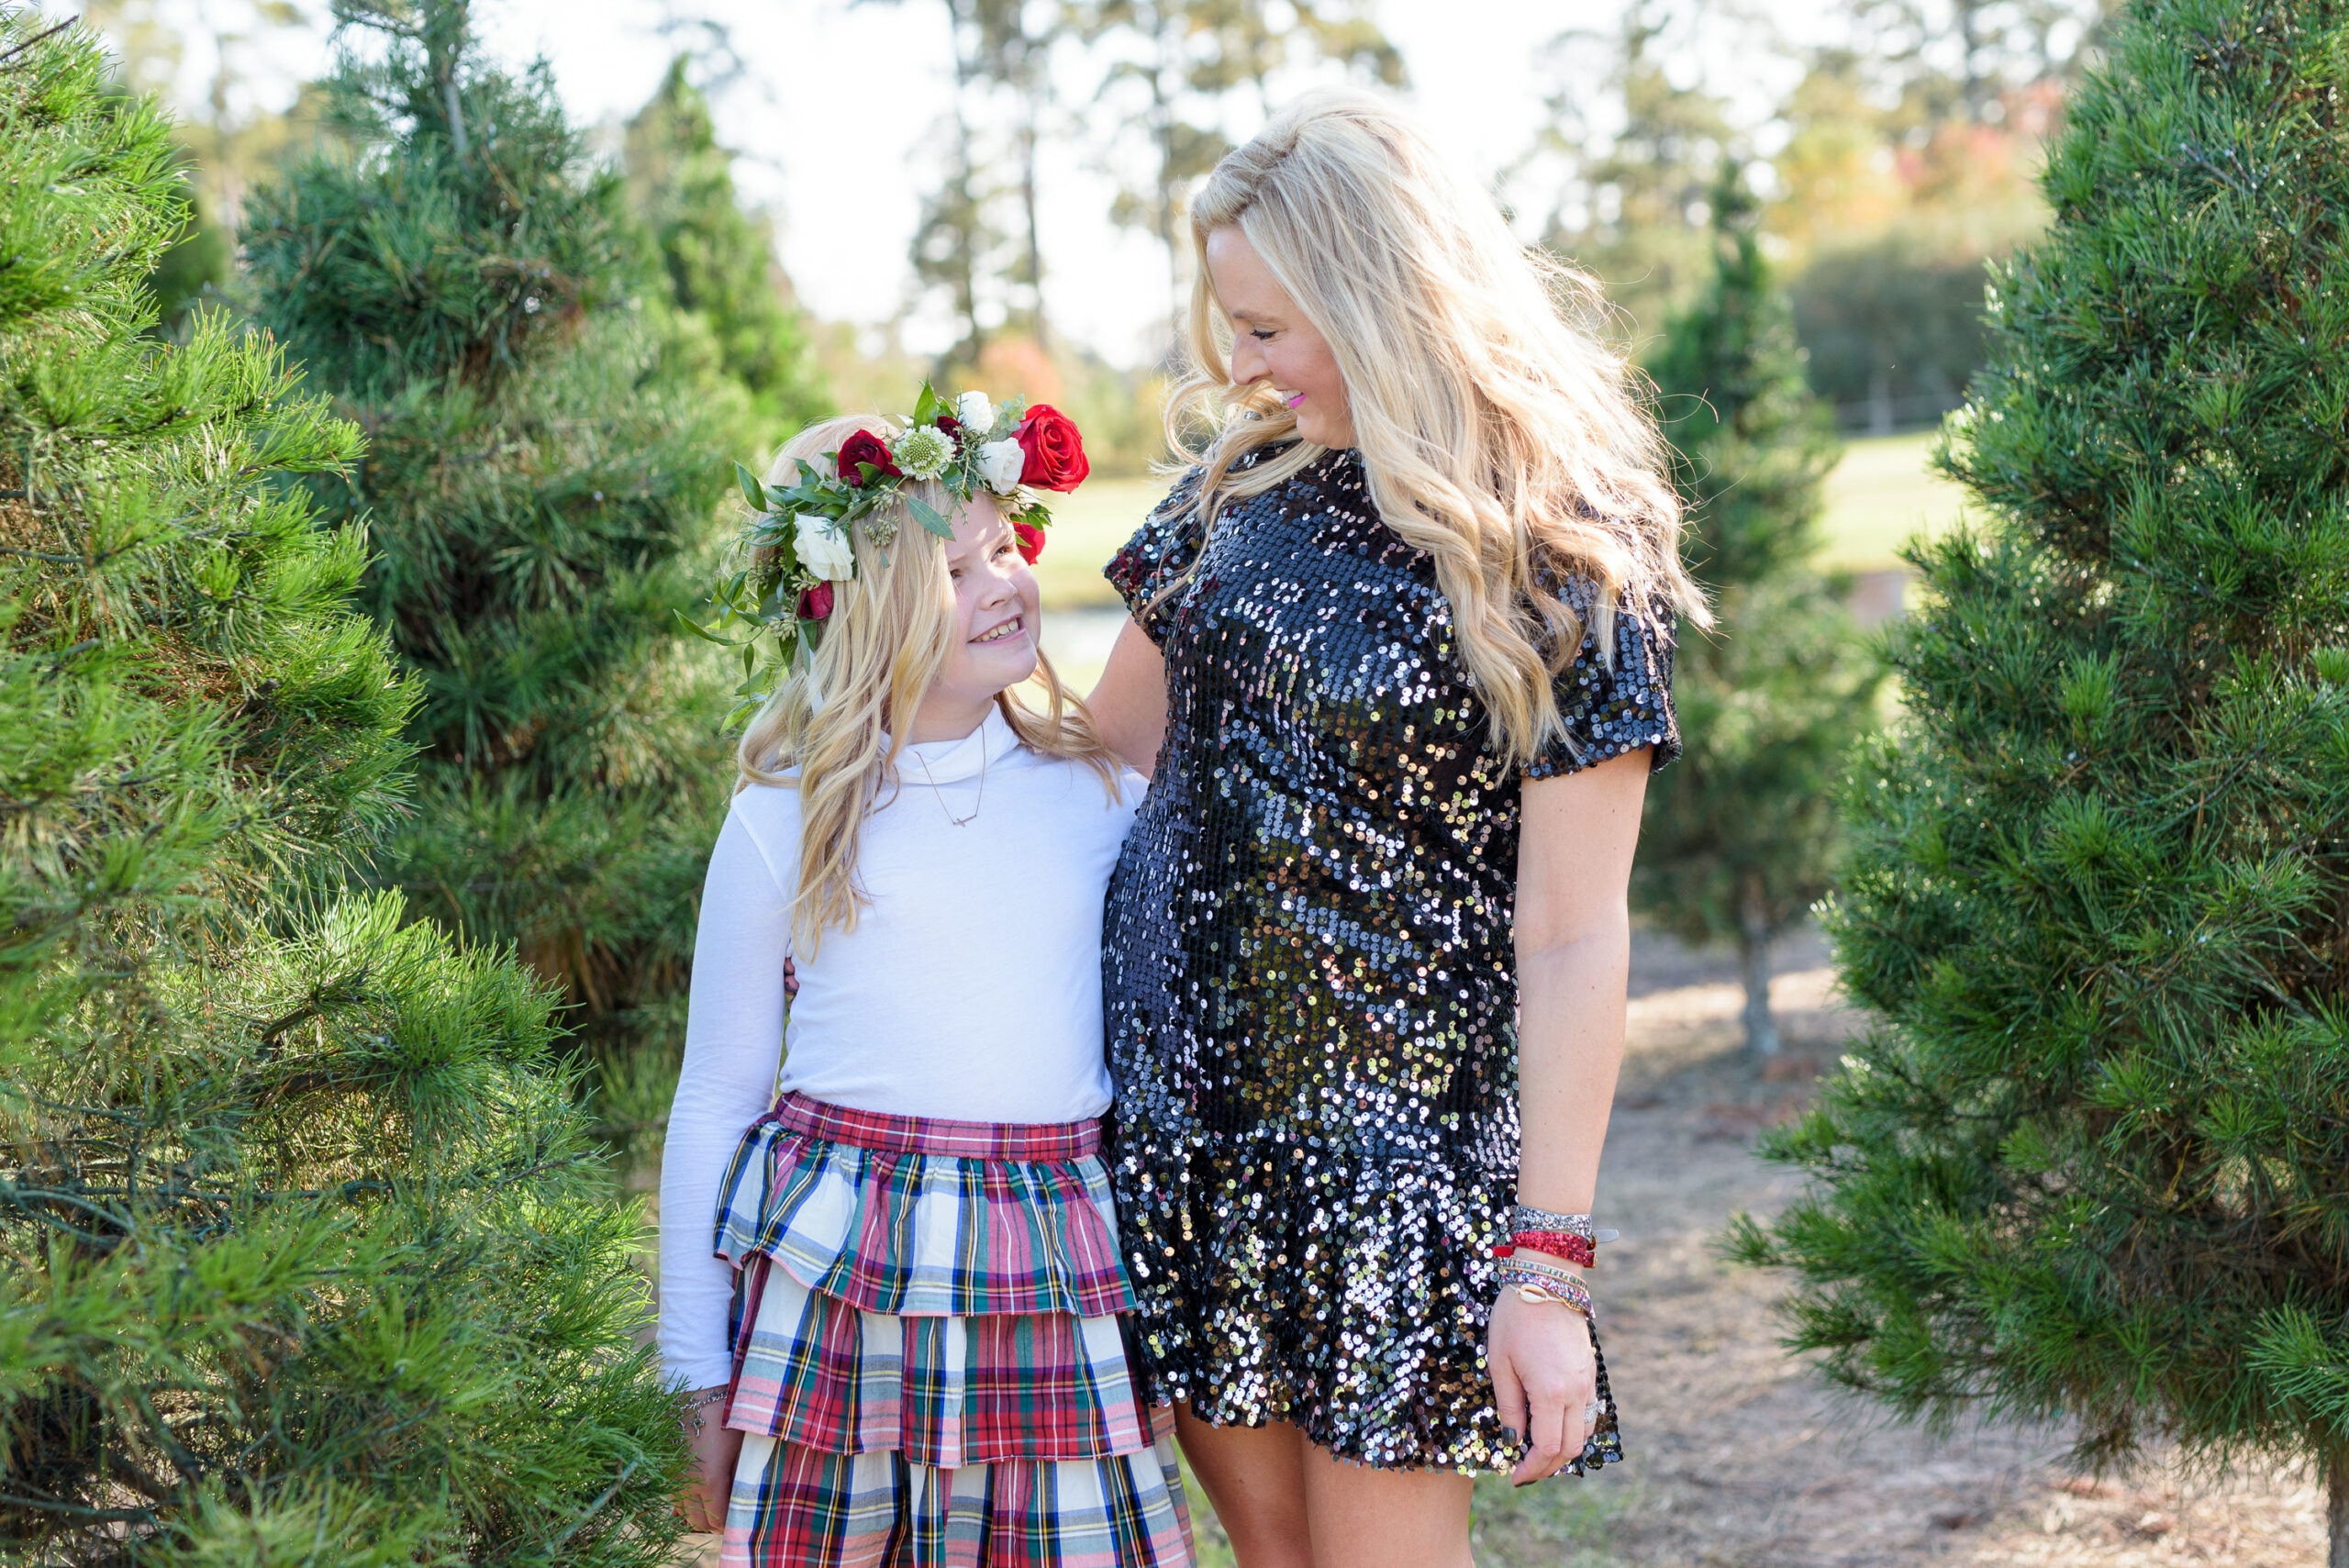 Christmas Tree Farm Photos by popular Houston lifestyle blog, Fancy Ashley: image of a mom and daughter standing together in a row of pine trees and wearing a black sequin dress, black suede ankle boots, plaid tier skirt, white long sleeve turtleneck shirt, and floral crown.